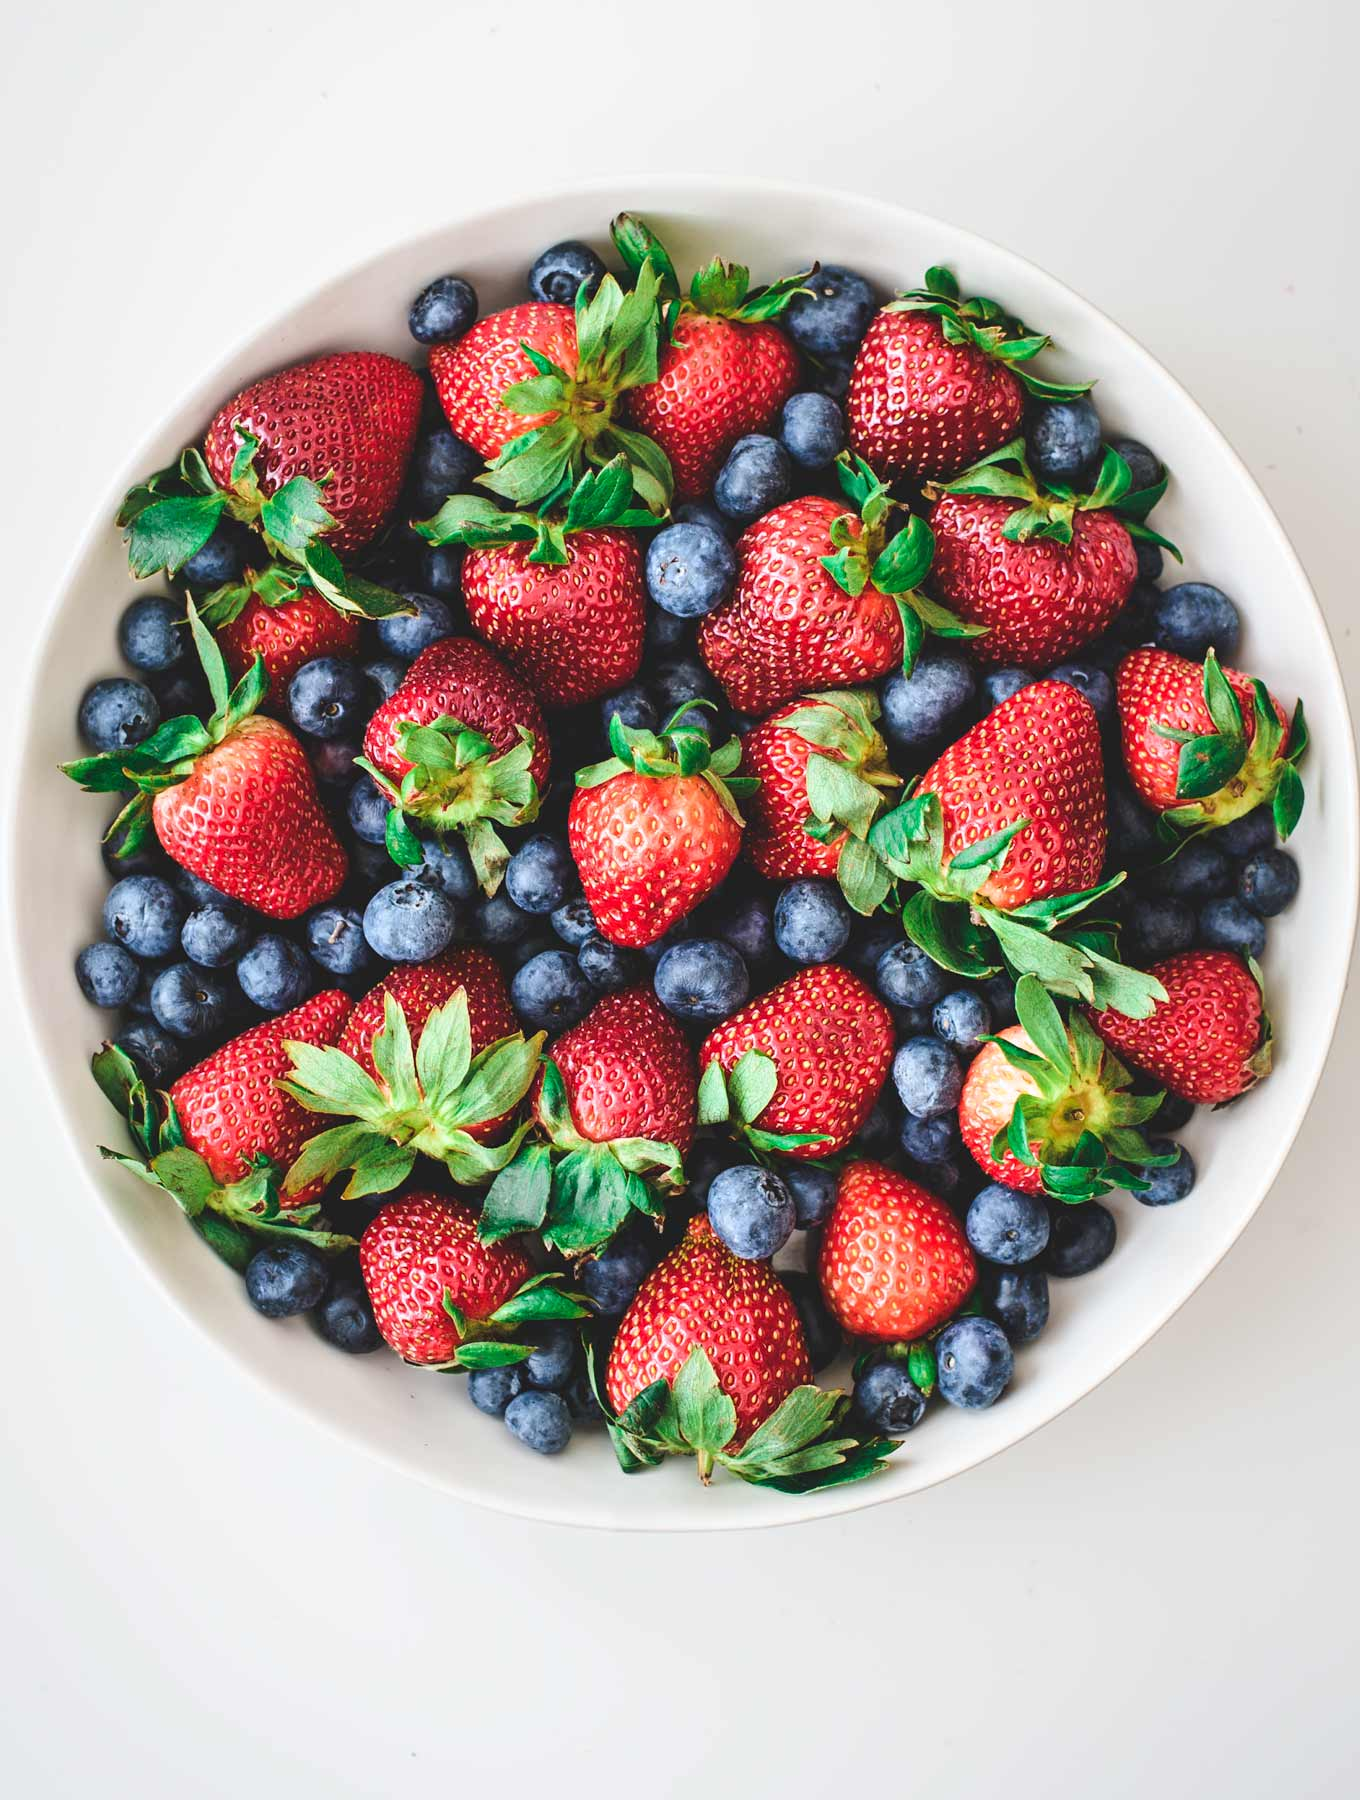 Bowl of fresh strawberries and blueberries